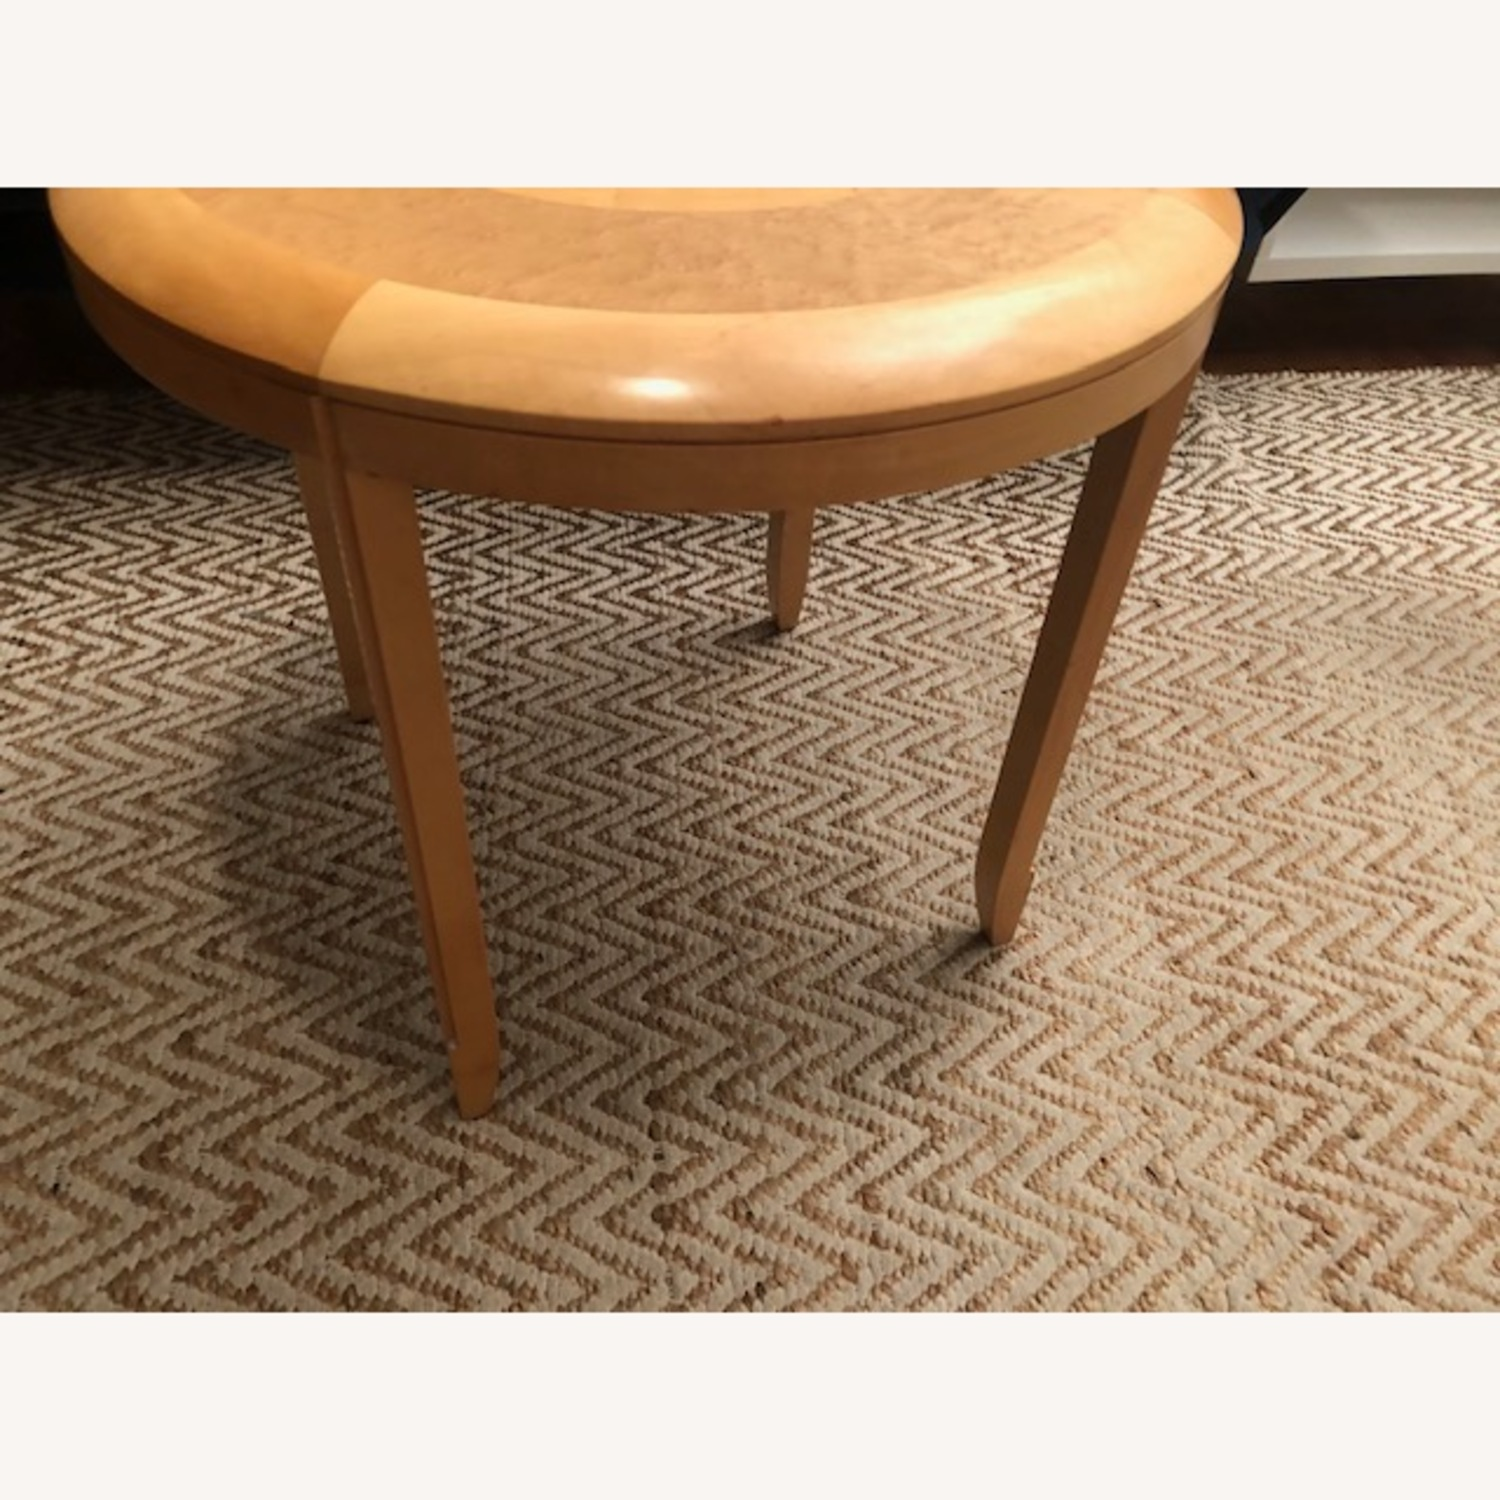 Solid Wood Round Table - image-1